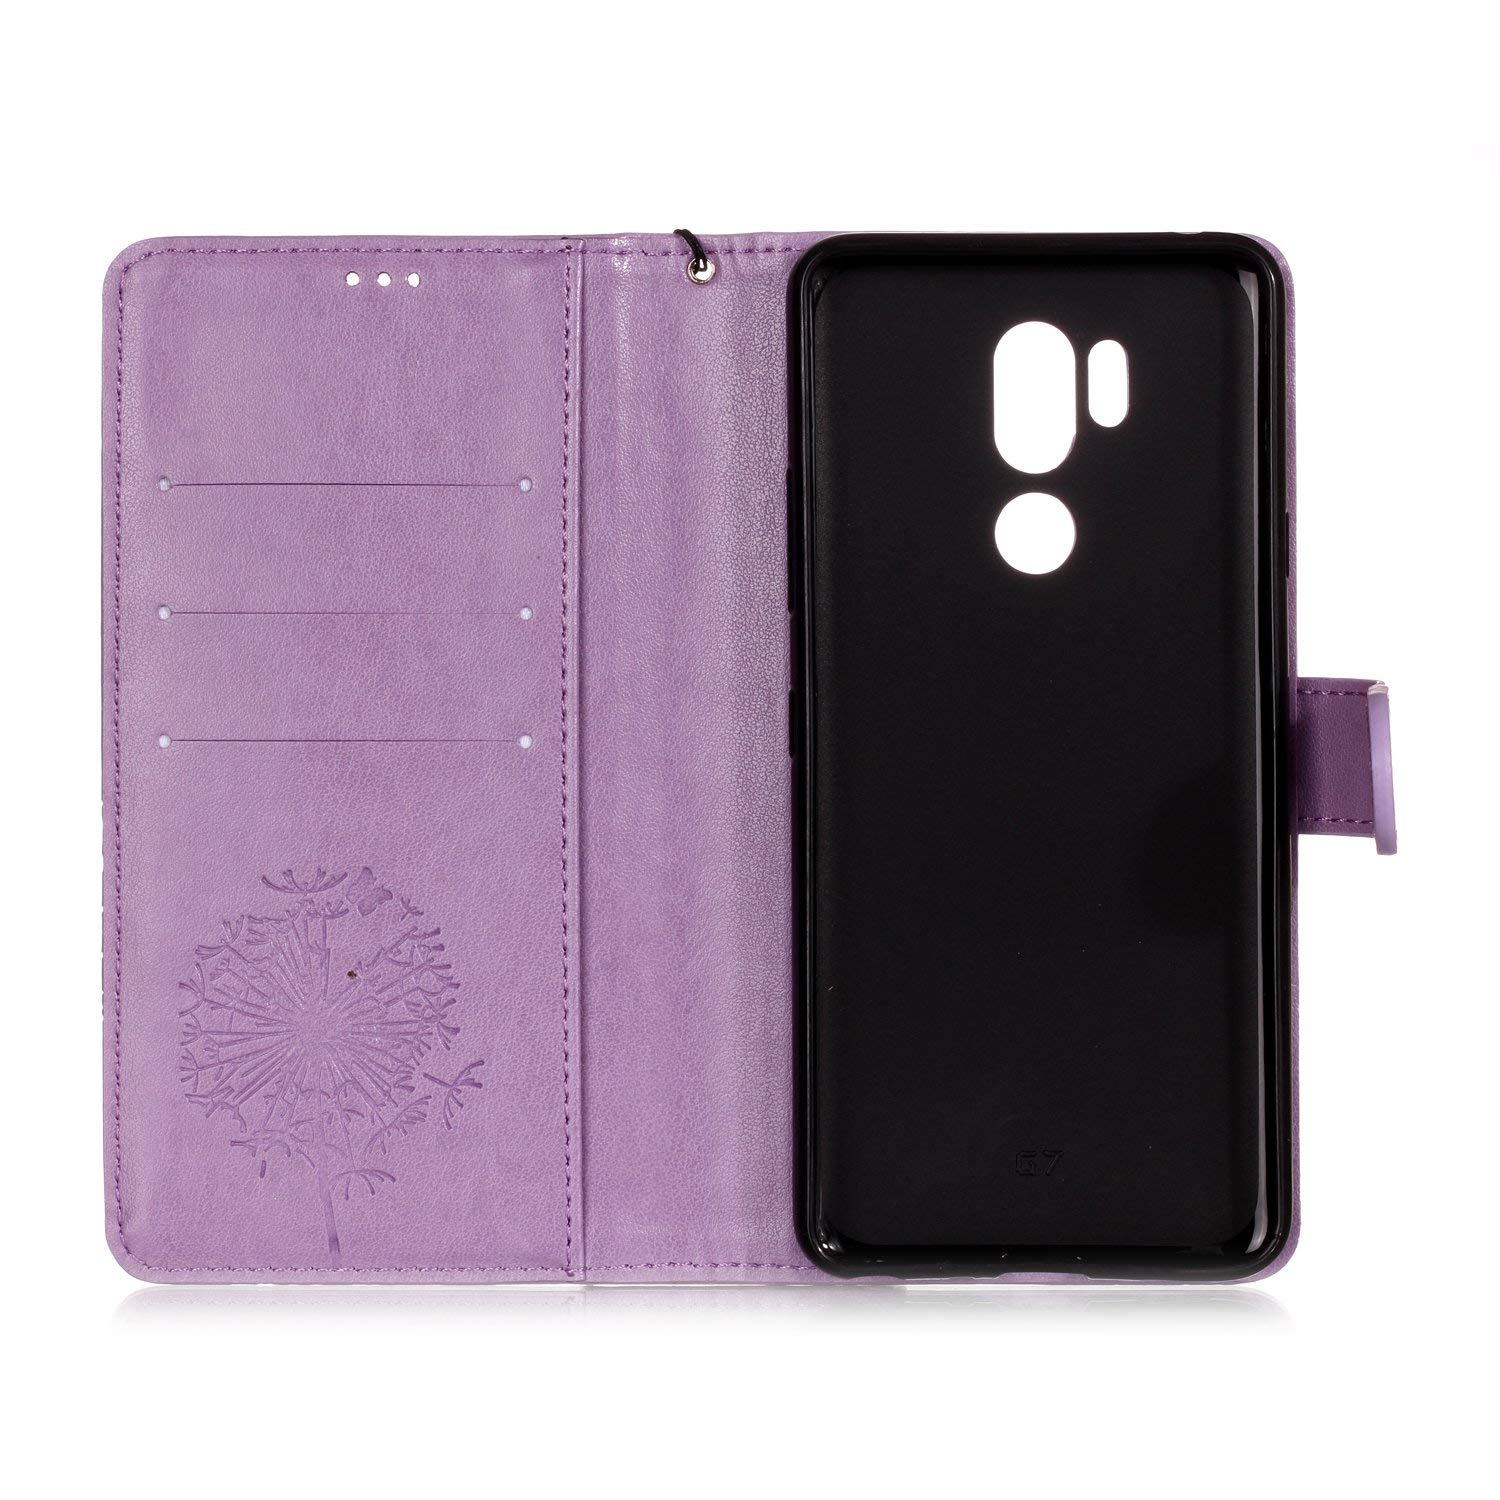 Shinyzone Protective Phone Case for LG G7,LG G7 ThinQ Case Embossed Butterfly Dandelion Pattern Series,Magnetic Stand Cover with Card Slots Leather Wallet Flip Case-Purple by Shinyzone (Image #4)